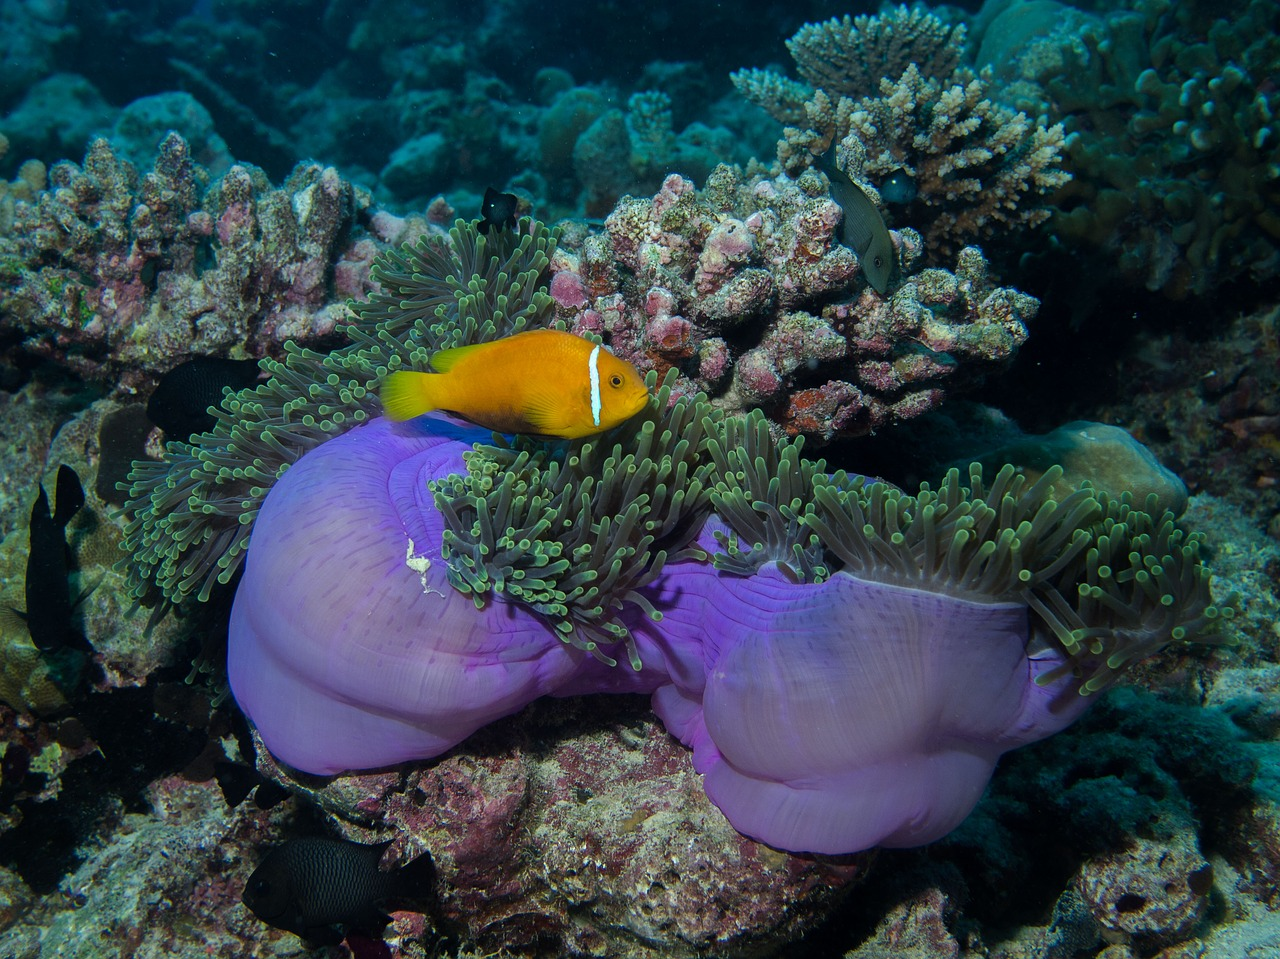 A little orange fish with a bright white stripe down its neck cruising over iridescent purple soft corals